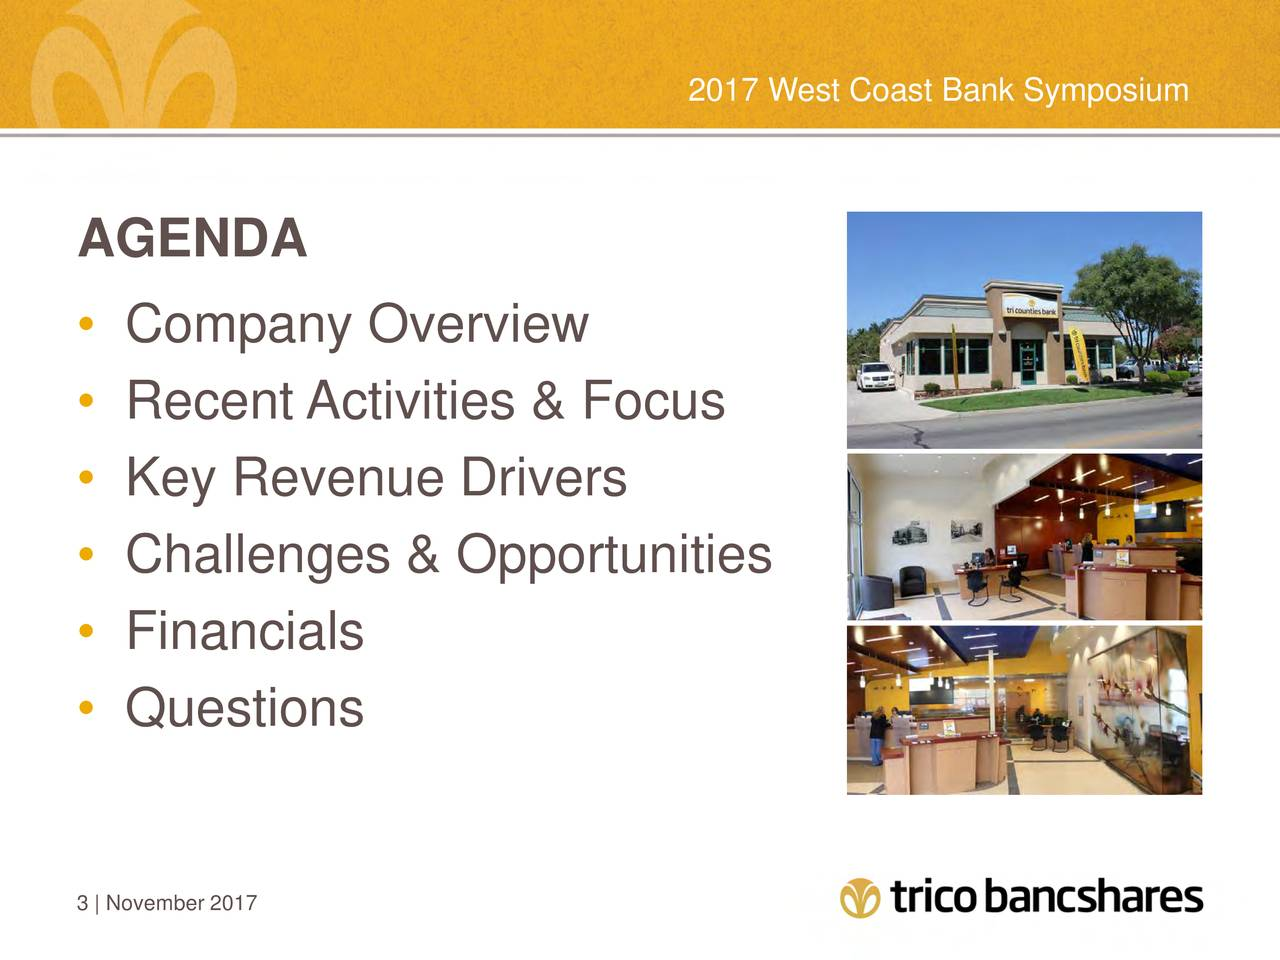 AGENDA • Company Overview • Recent Activities & Focus • Key Revenue Drivers • Challenges & Opportunities • Financials • Questions 3 | November 2017